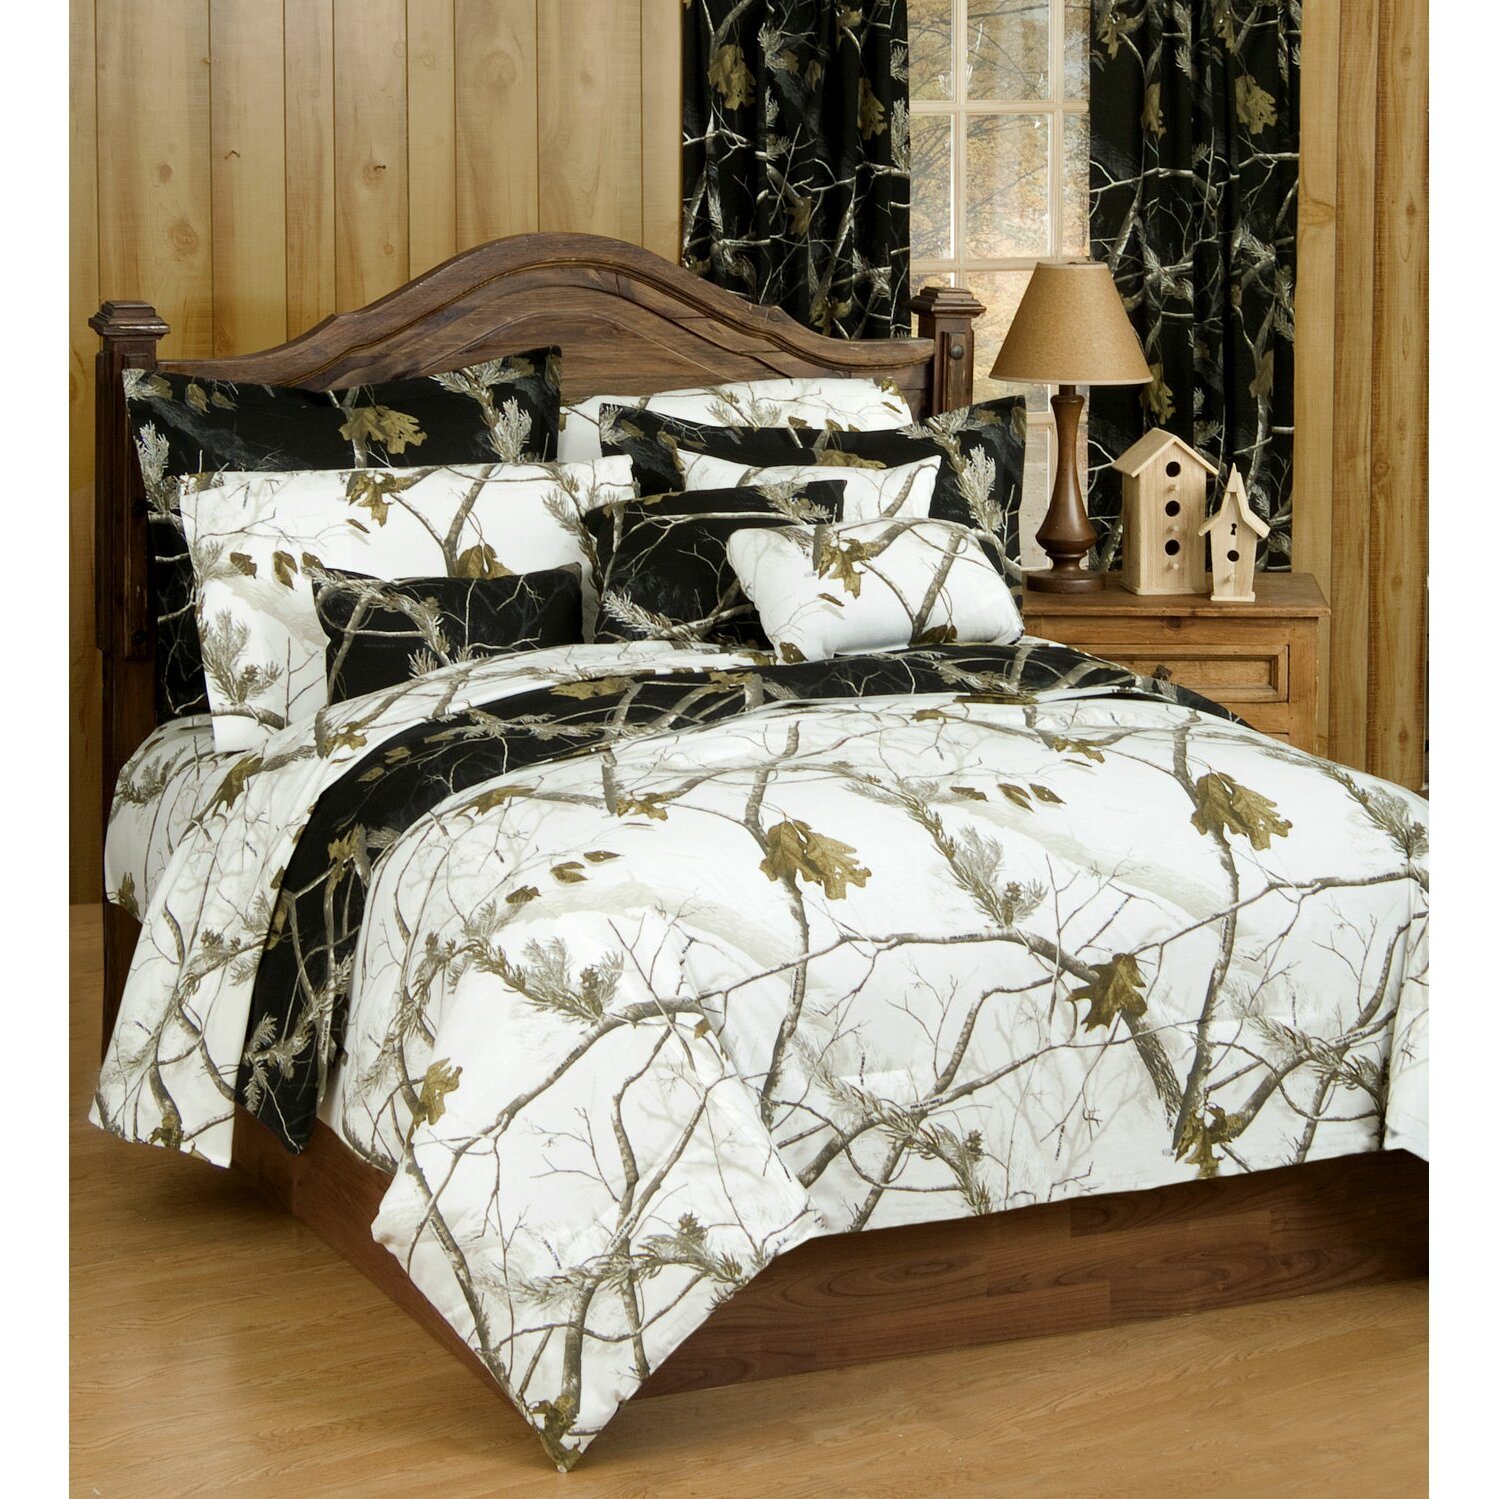 Camouflage Bedroom Sets: Realtree Camo Comforter Collection & Reviews